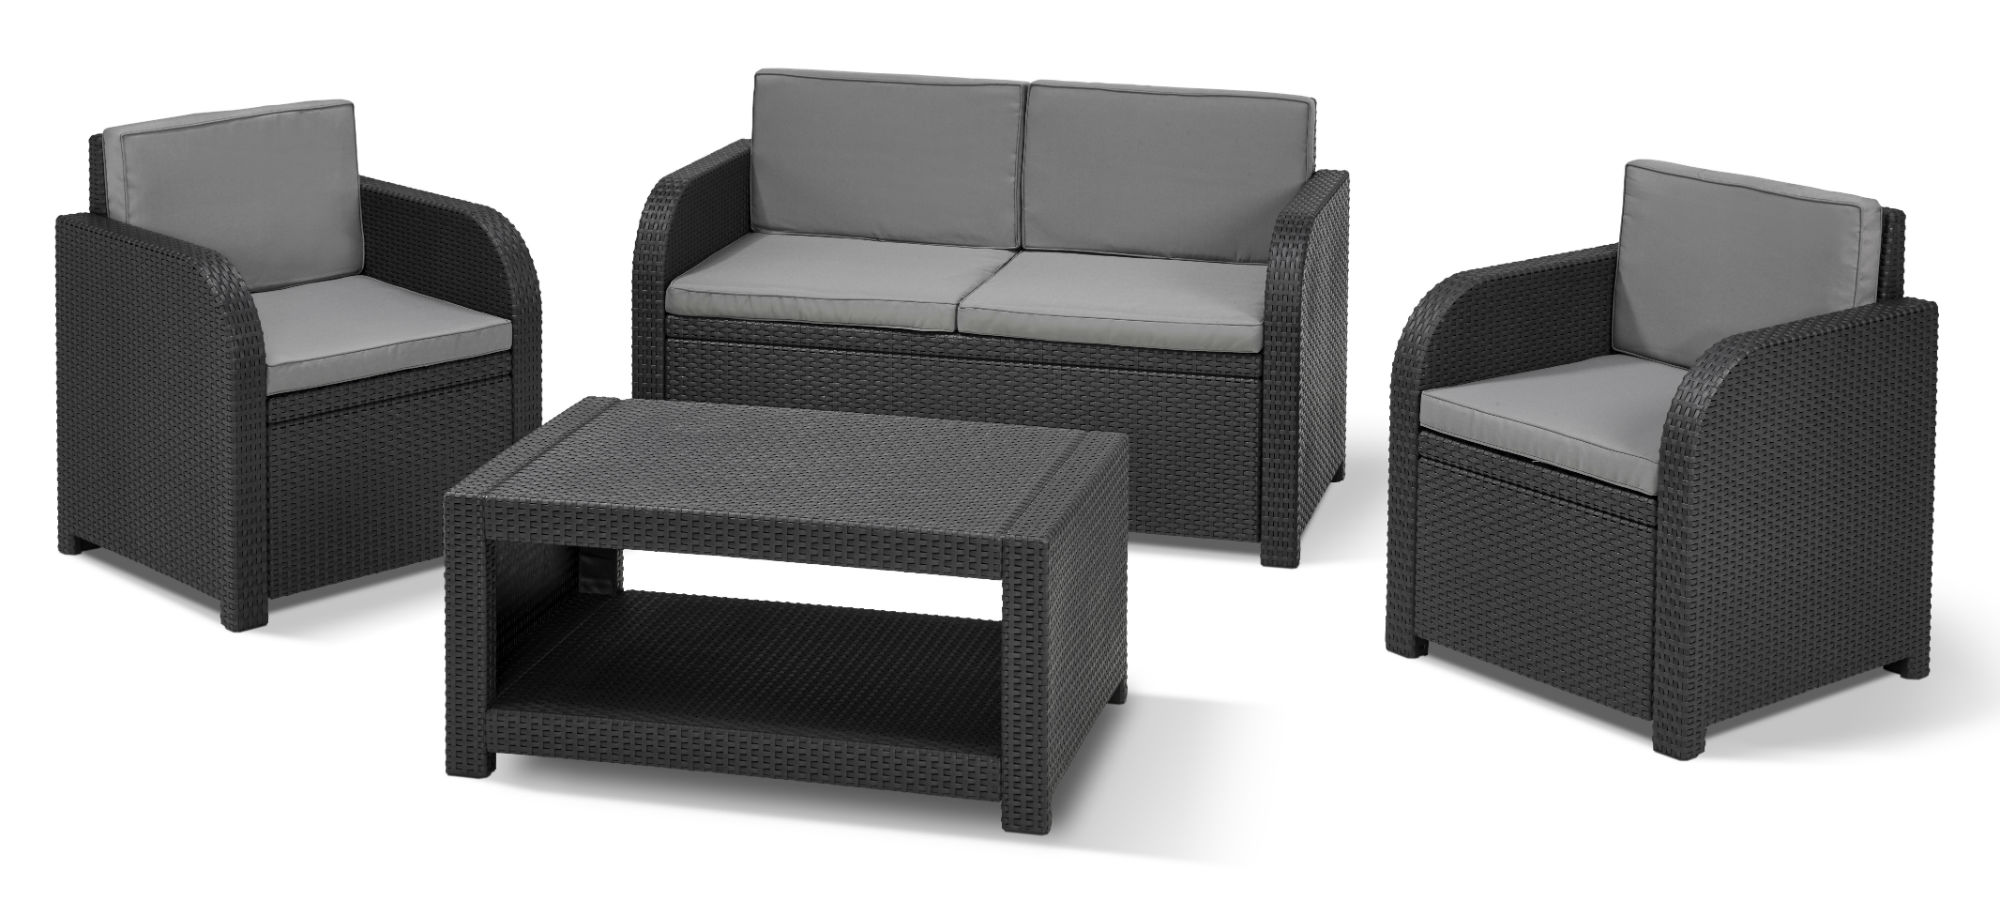 Lounge sets | Loungesets - Allibert